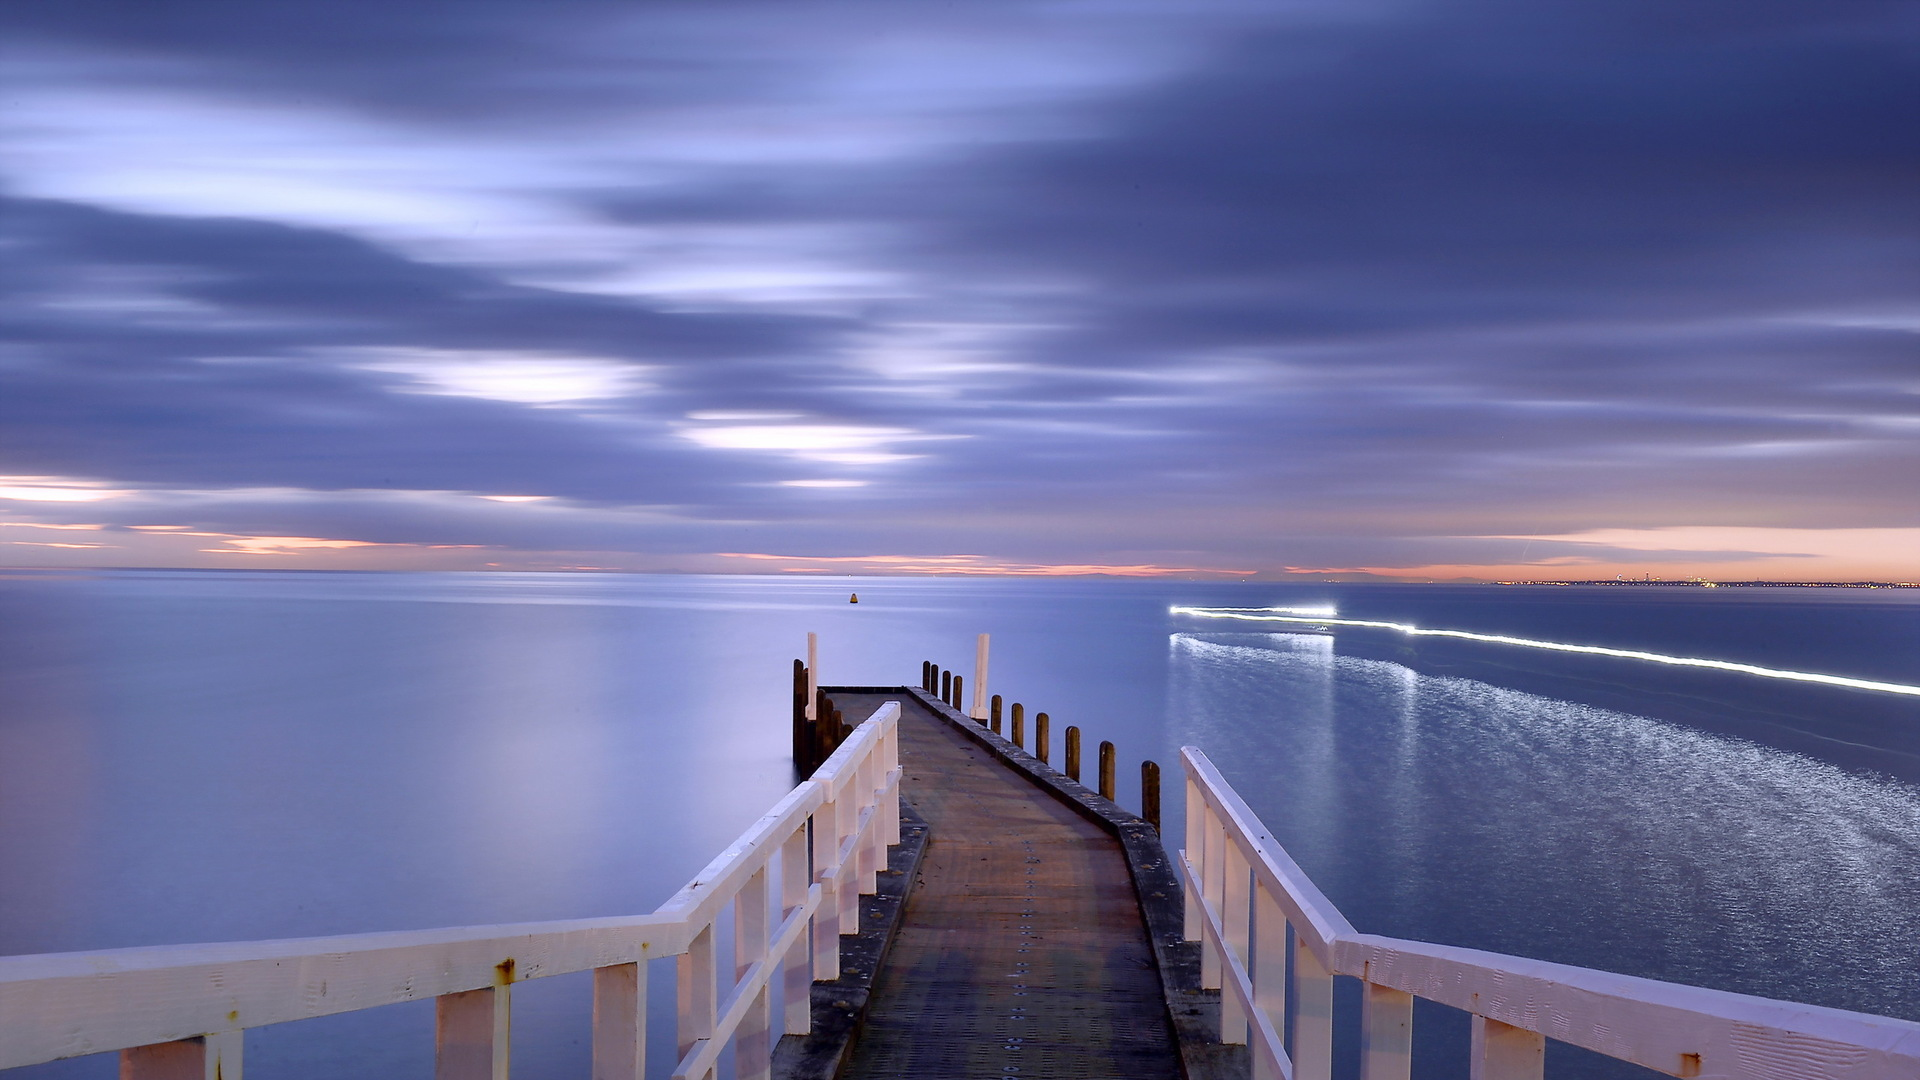 Lovely Dock On The Bay At Dusk Hd Desktop Background HD wallpapers